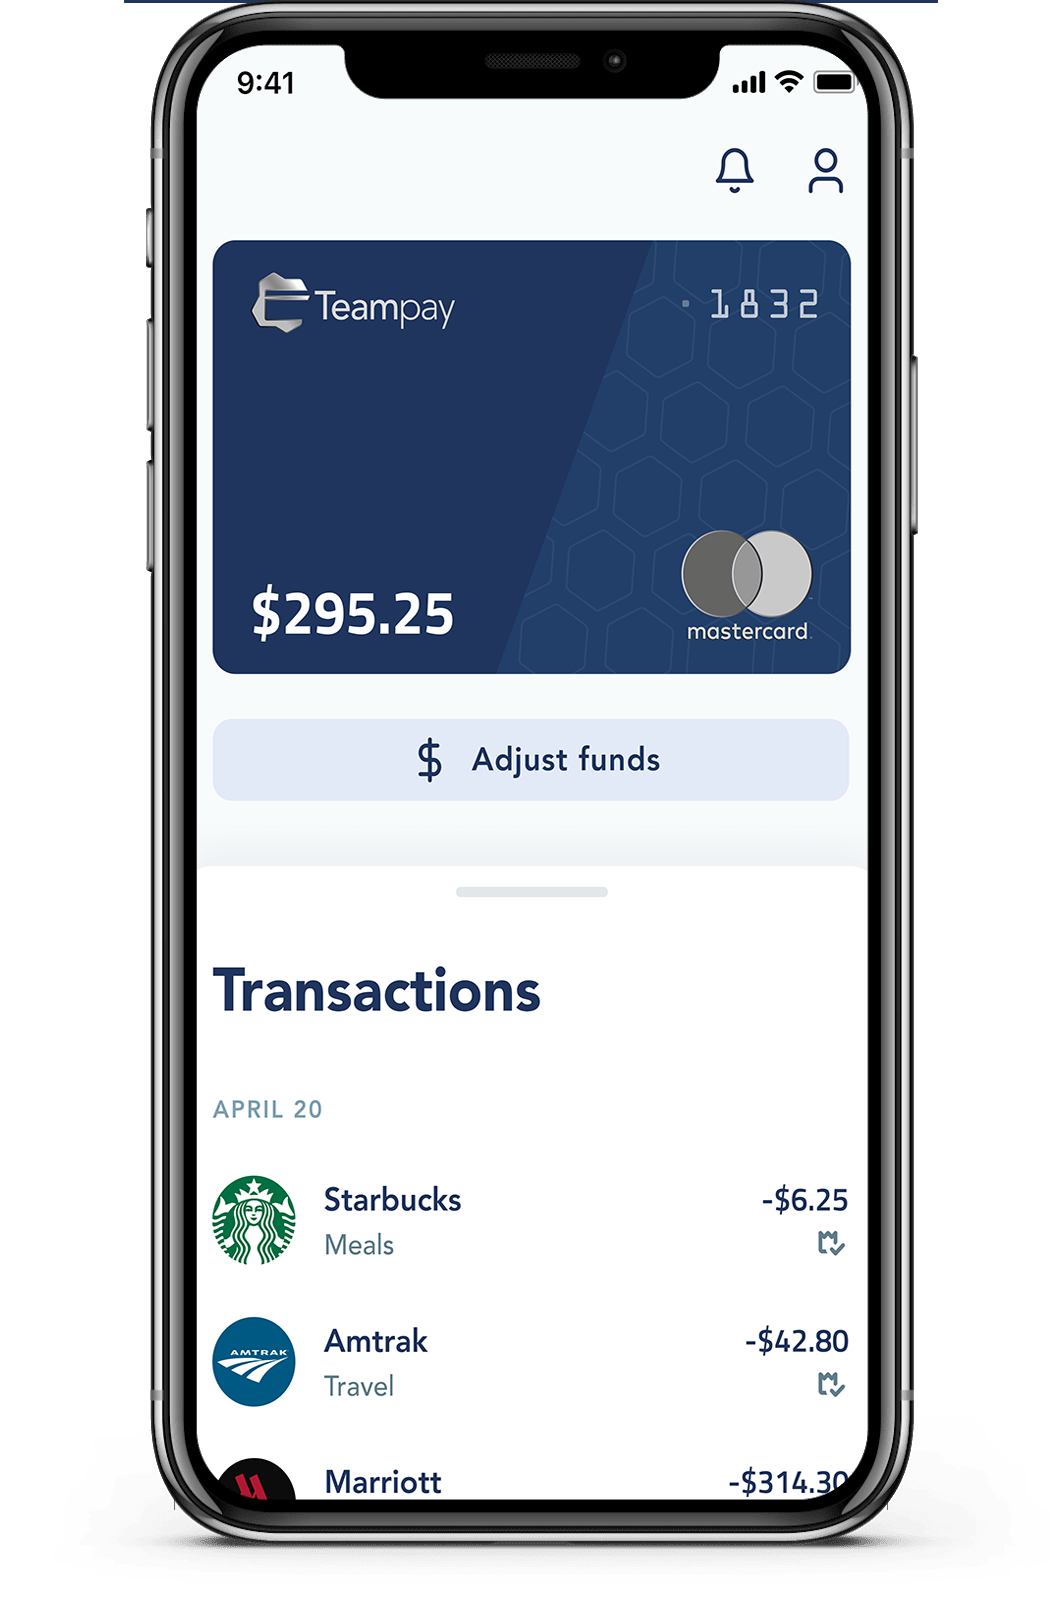 Teampay Launches Digital Corporate Card in Collaboration with Mastercard thumbnail